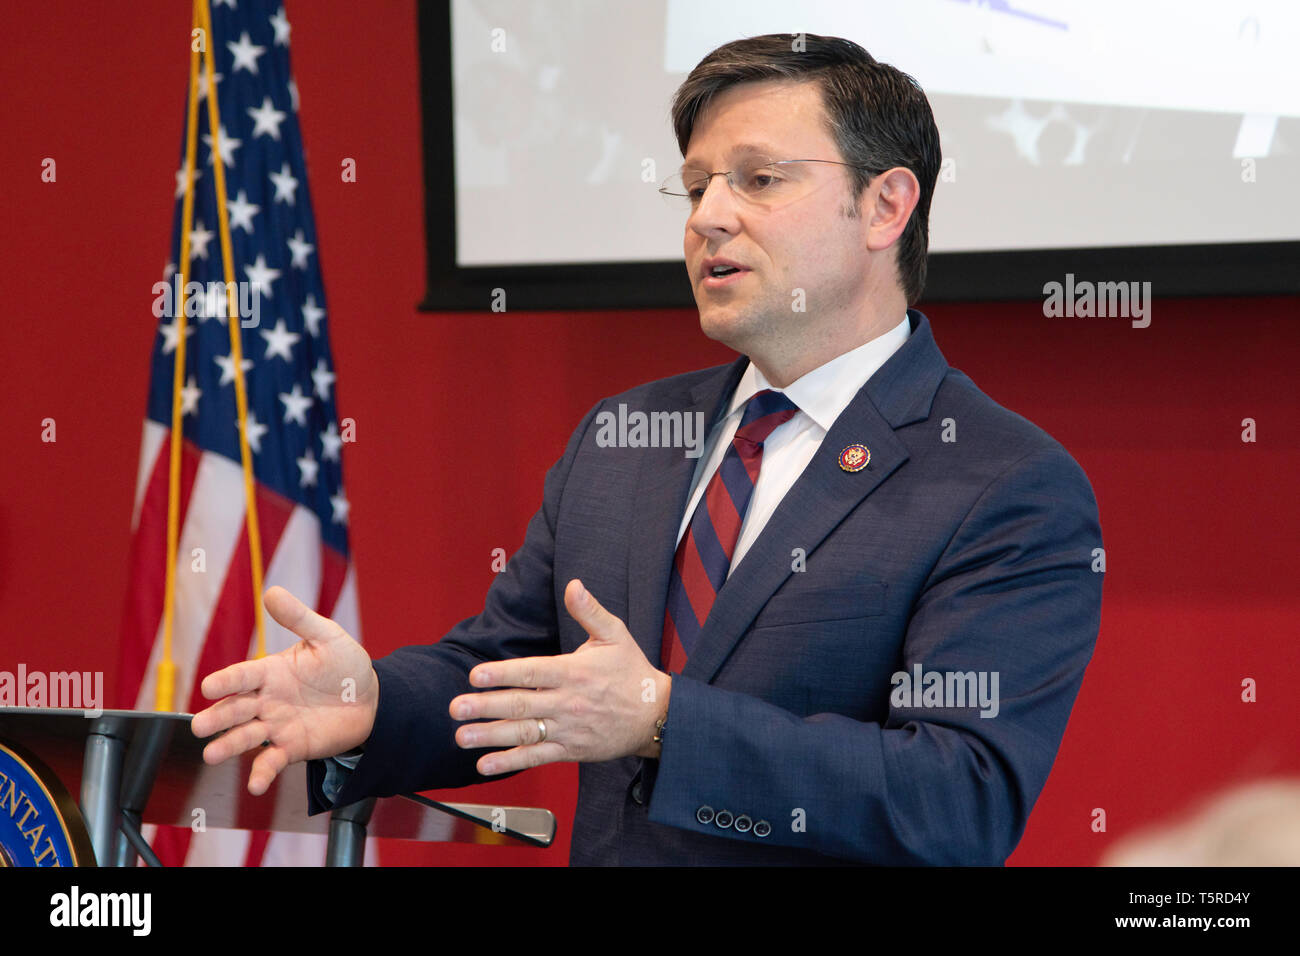 BOSSIER CITY, LA., U.S.A. - APRIL 25, 2019: U.S. Rep. Mike Johnson, R-La., speaks at a town-hall style meeting with constituents at Bossier Parish Com - Stock Image